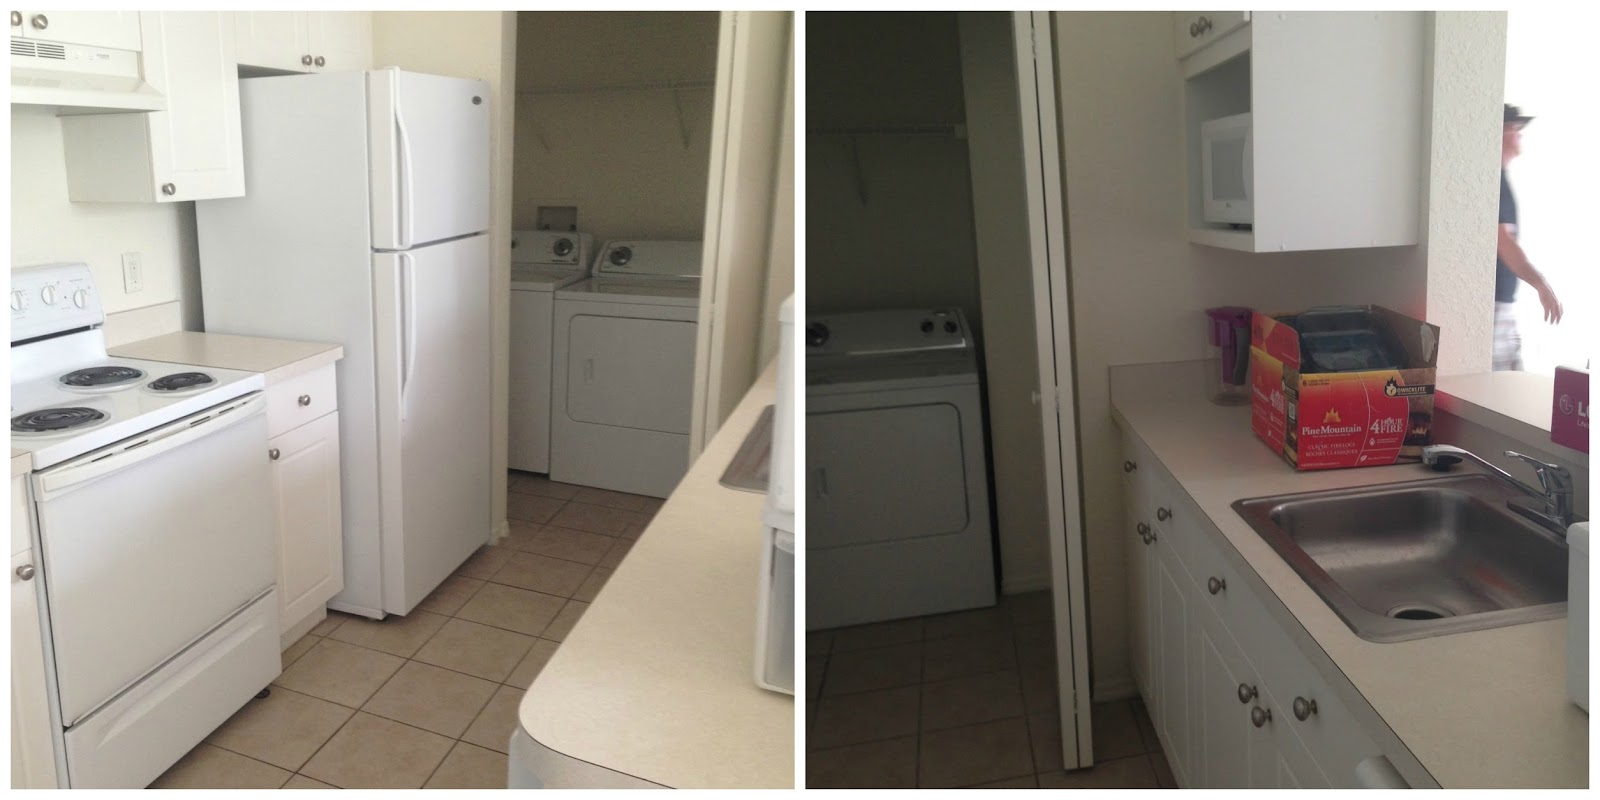 As You Make Your Way Through The Kitchen You Find My Laundry Room. The  Place Came With The Washer And Dryer!